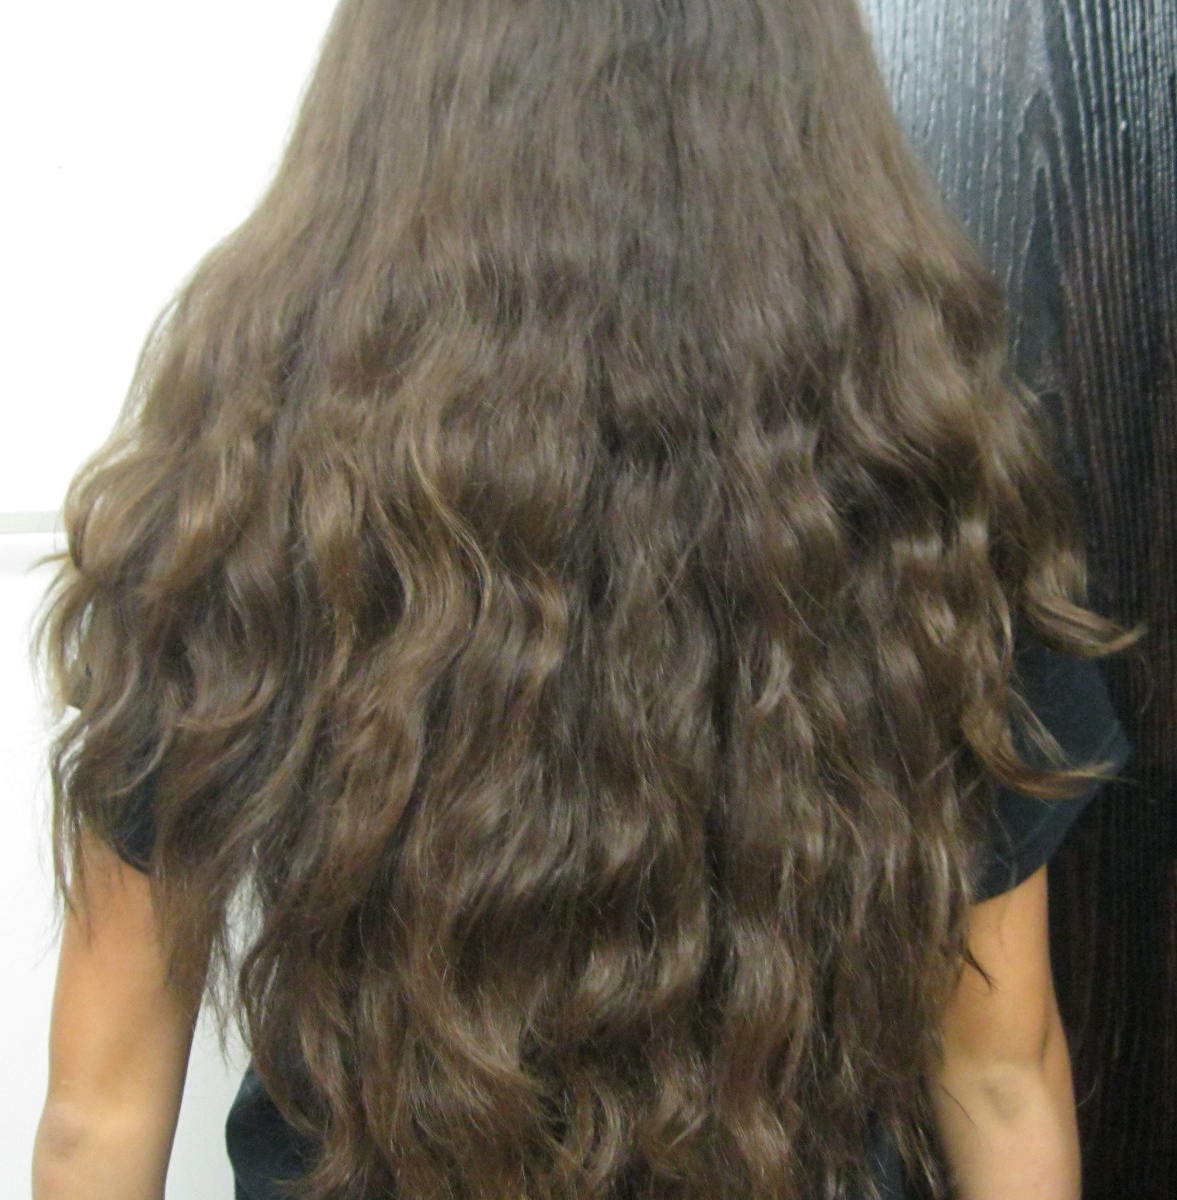 Wavy Hairstyles: Best Cuts And Styles For Long, Naturally Wavy Hair Intended For Popular Long Layered Waves Hairstyles (View 18 of 20)